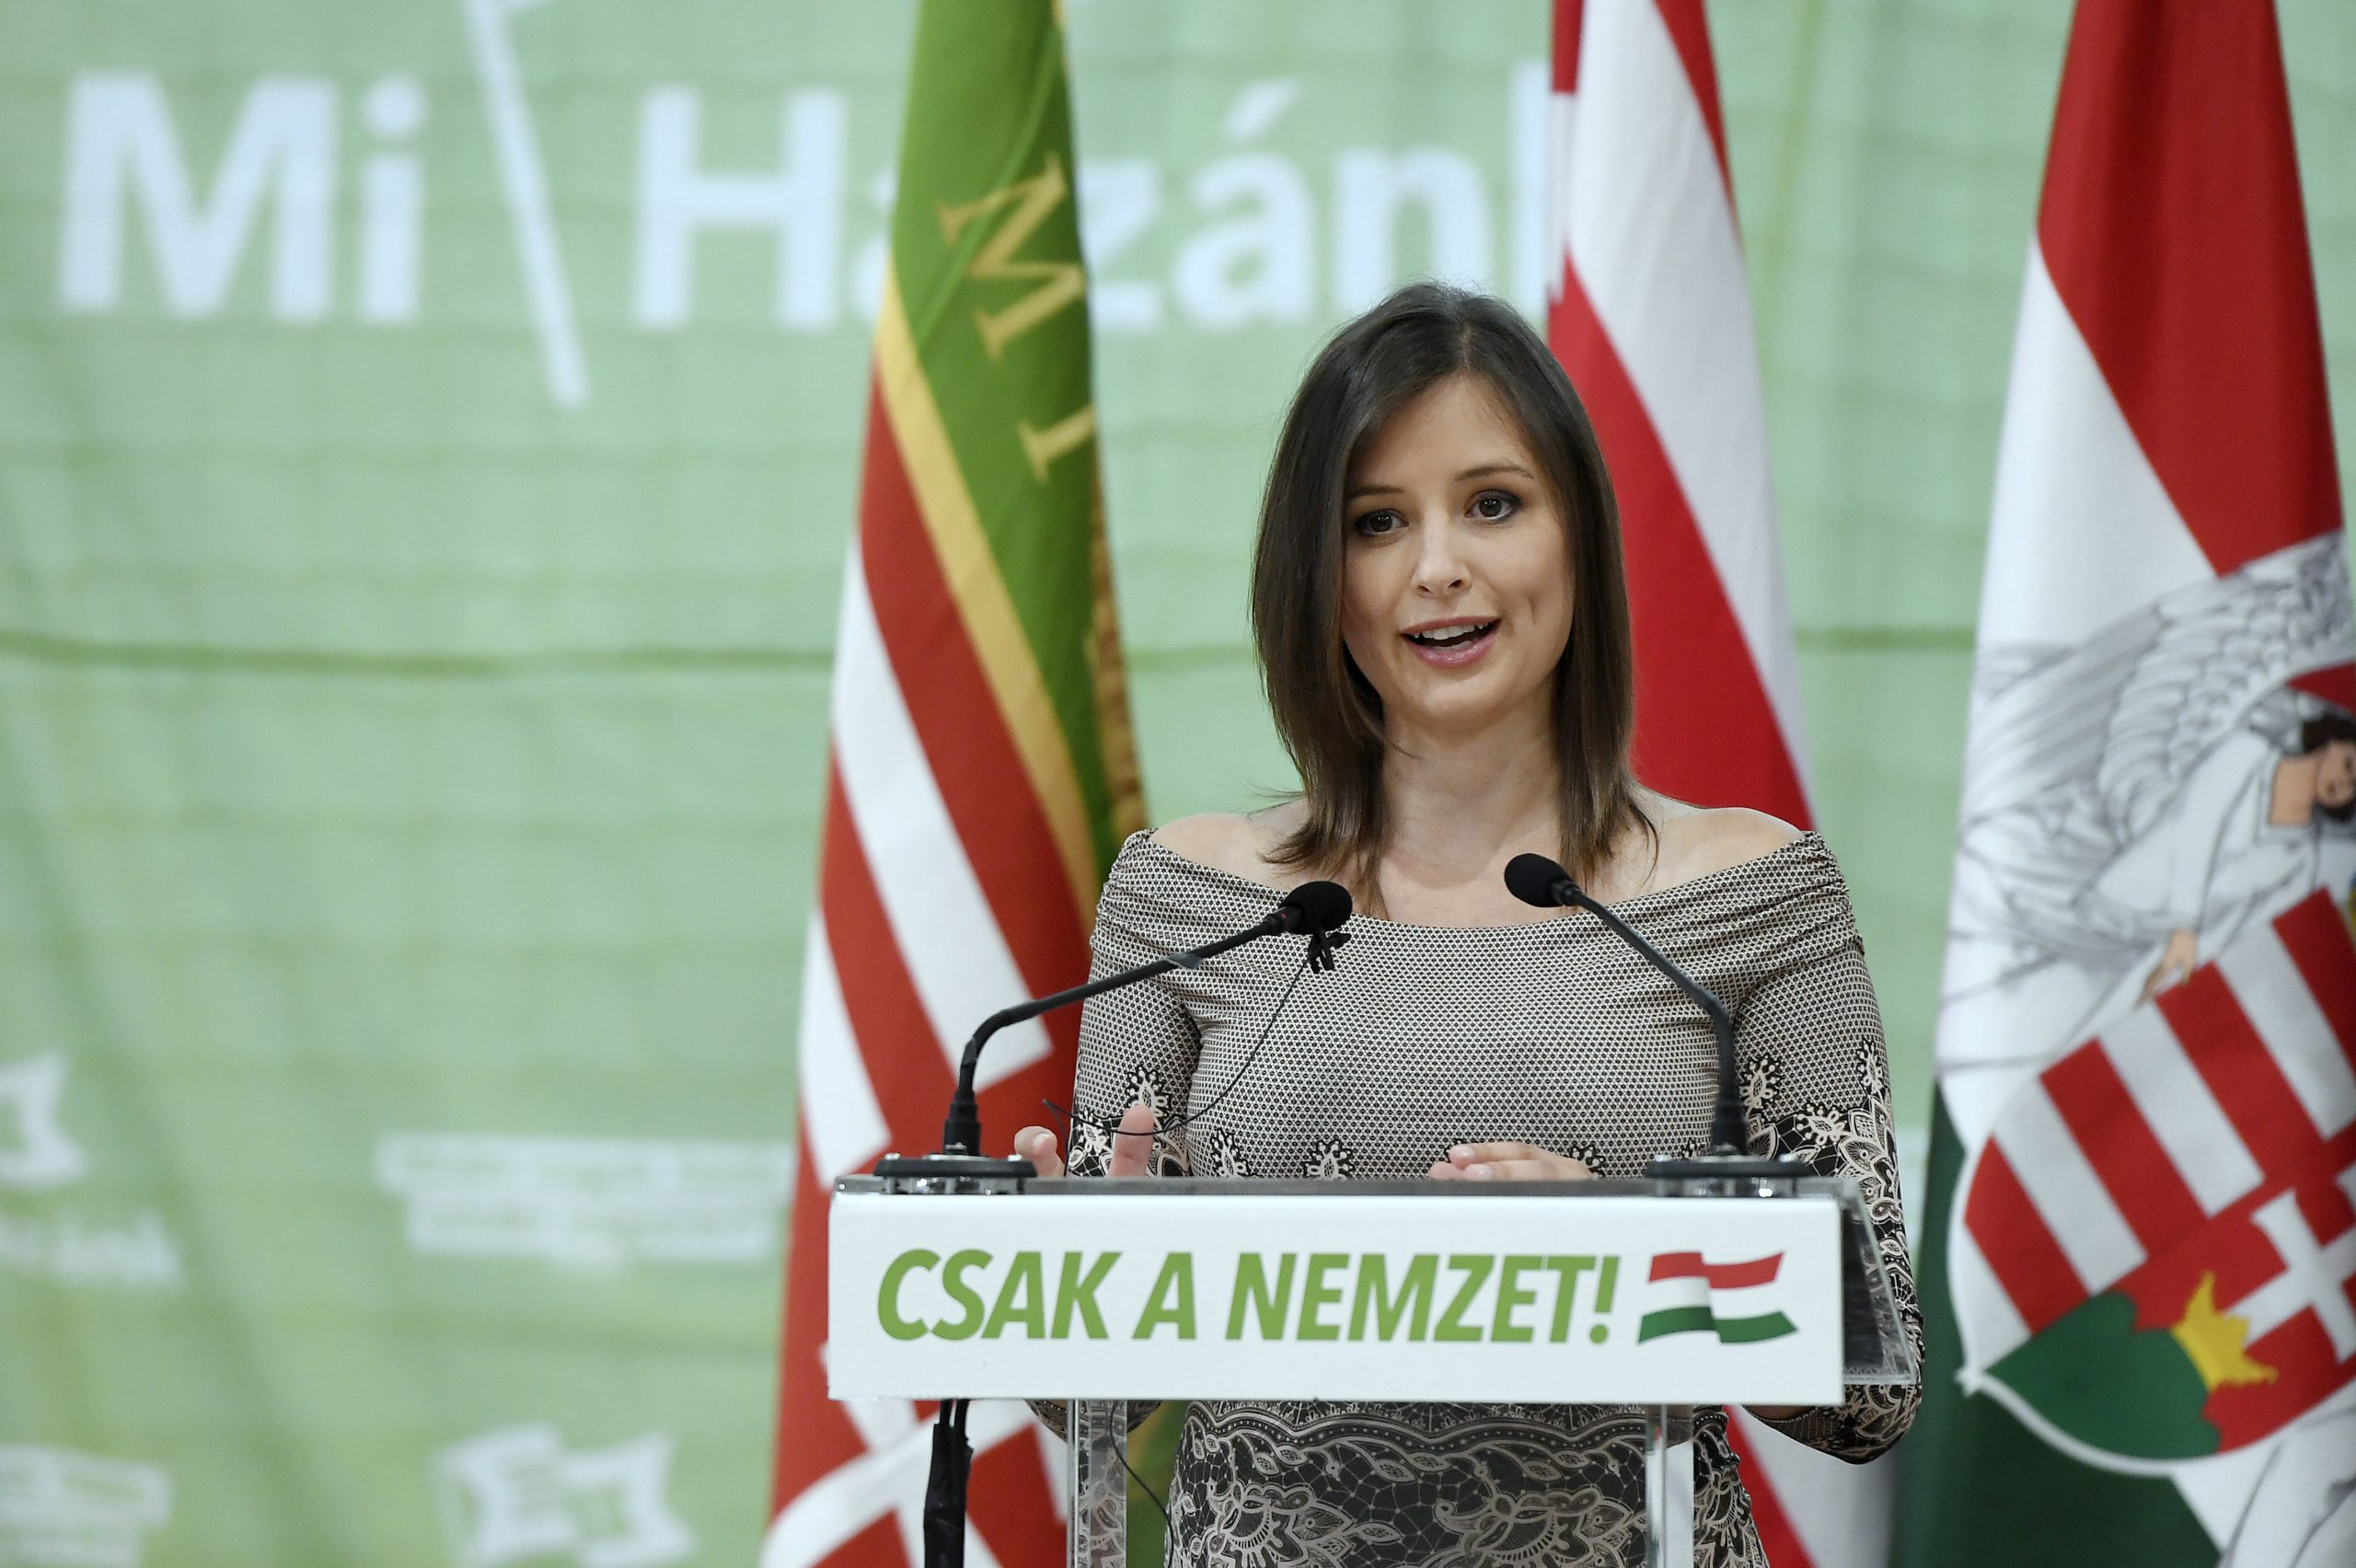 Mi Hazánk: Party Offers 'Third Option' Apart from Fidesz and Joint Opposition